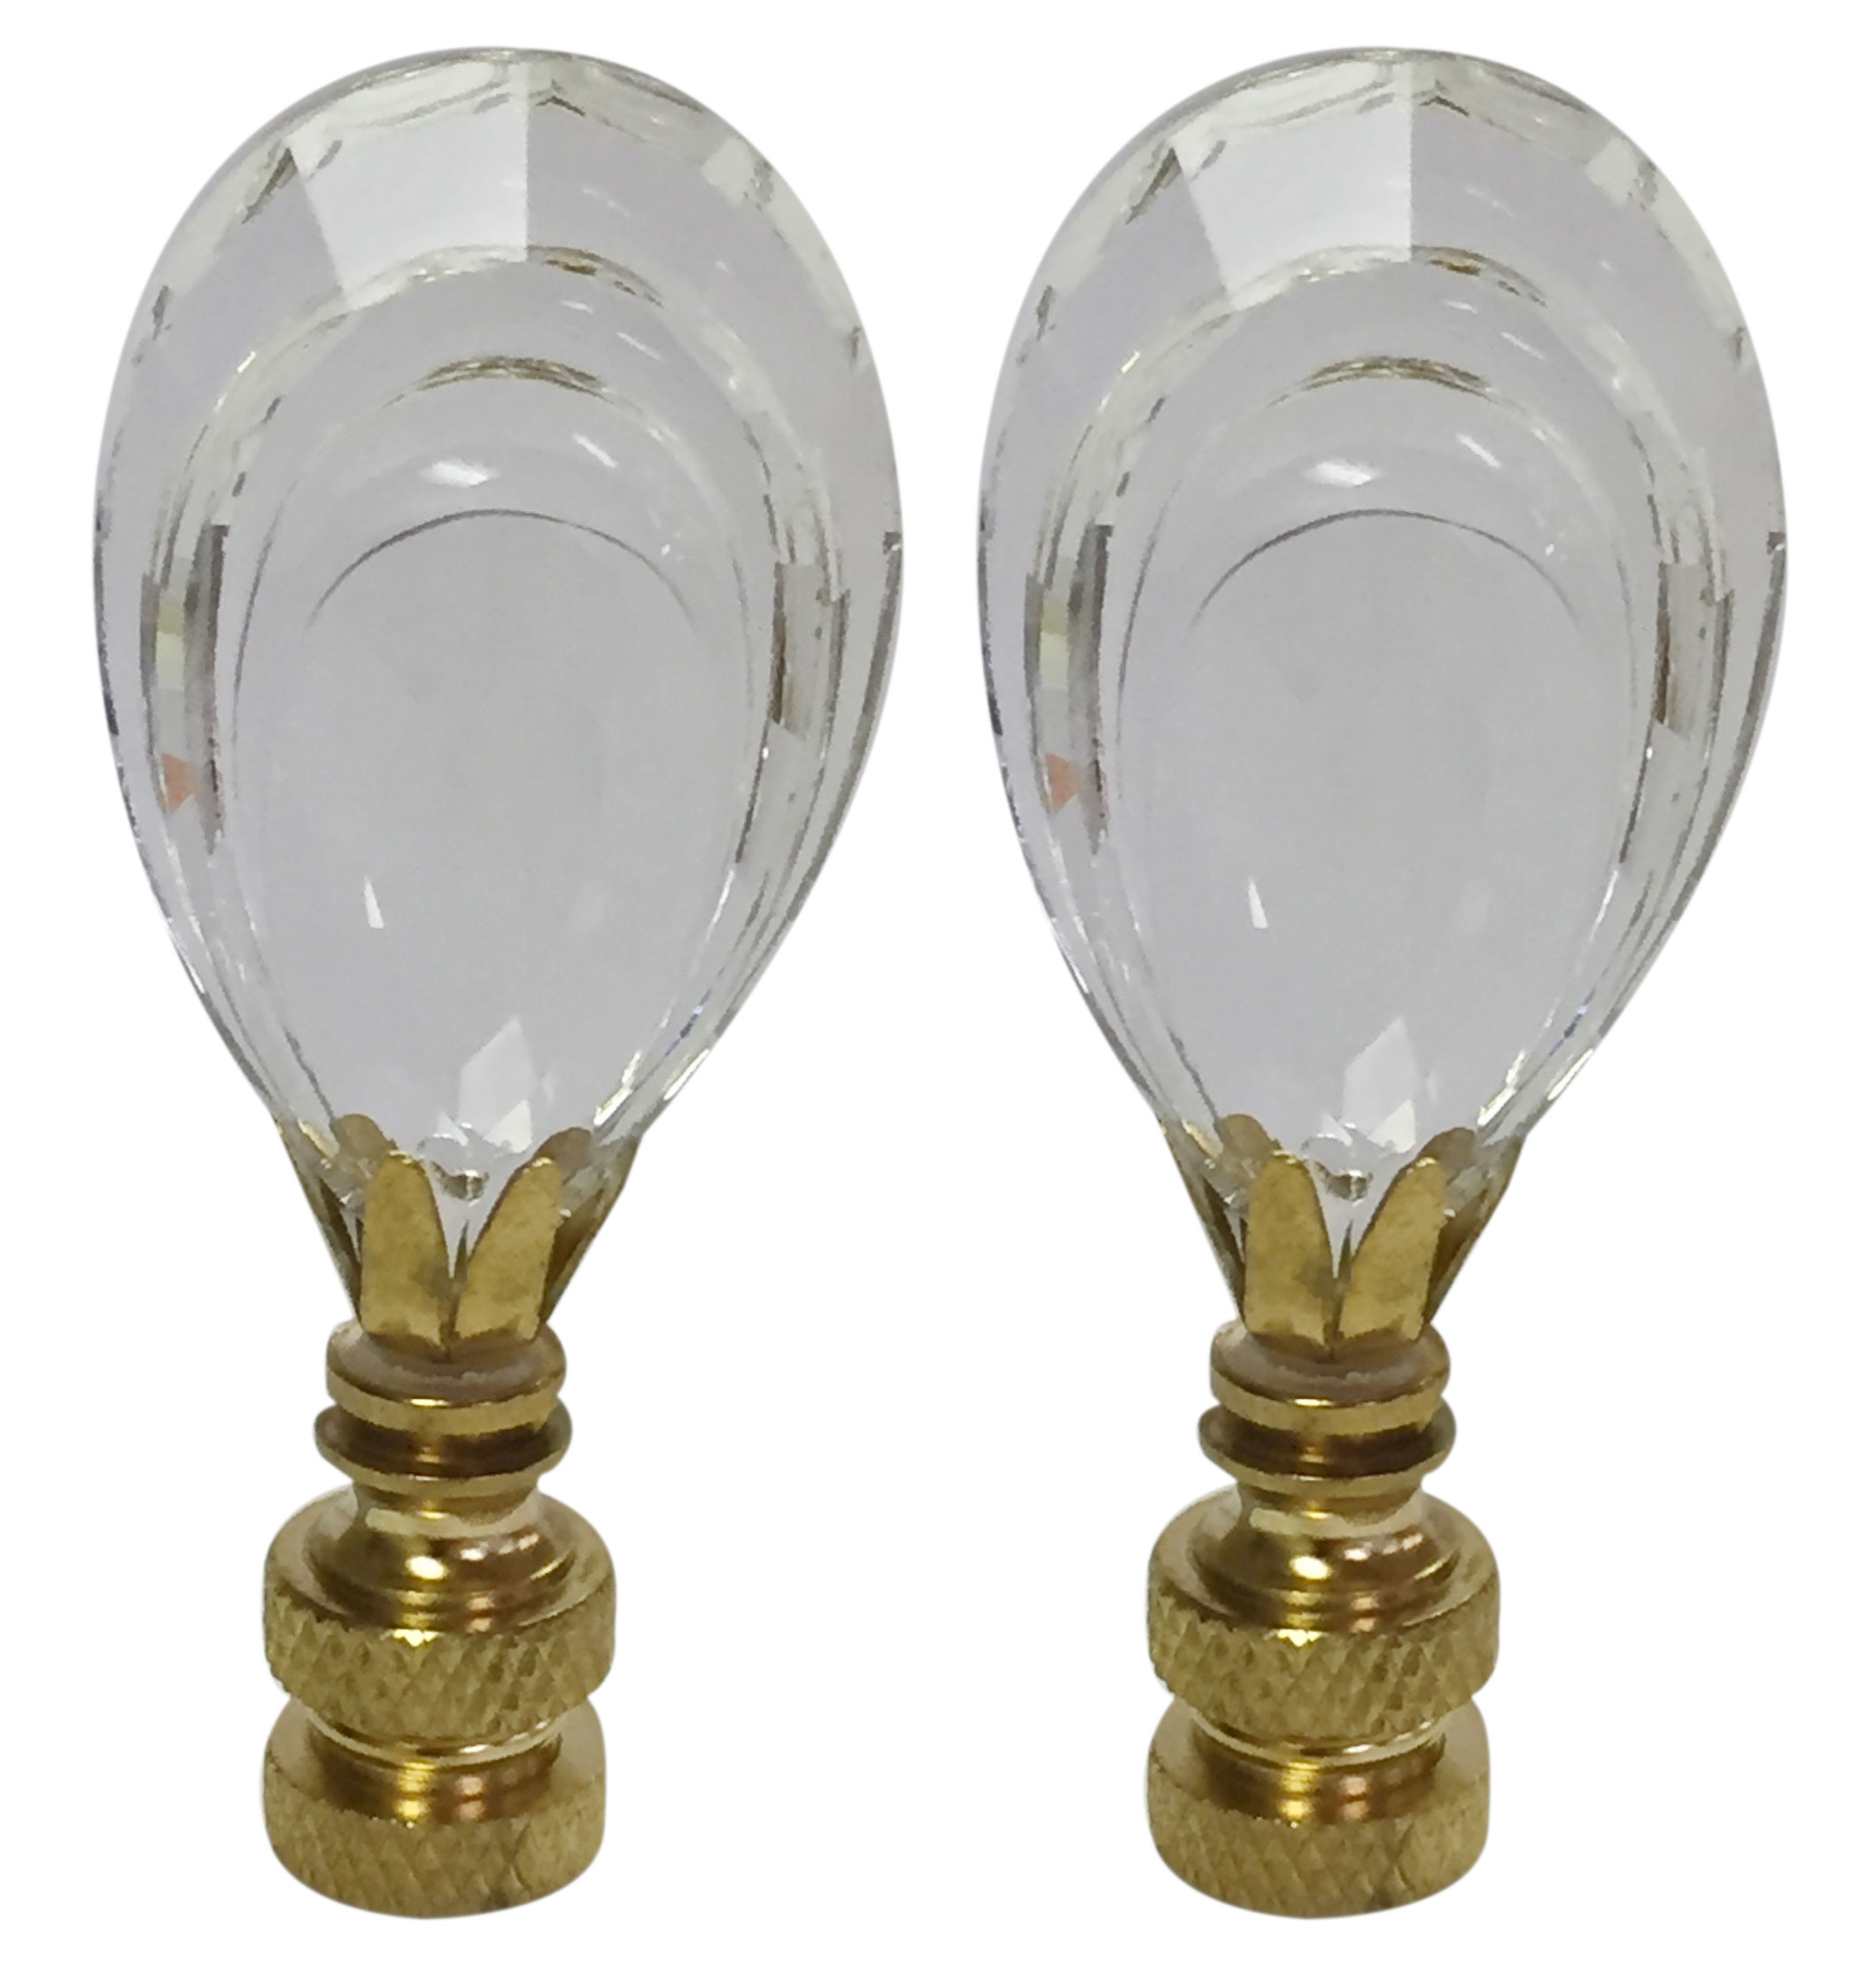 Royal Designs Flat Teardrop Shaped K9 Clear Crystal Lamp Finial for Lamp Shade with Polished Brass Base Set of 2